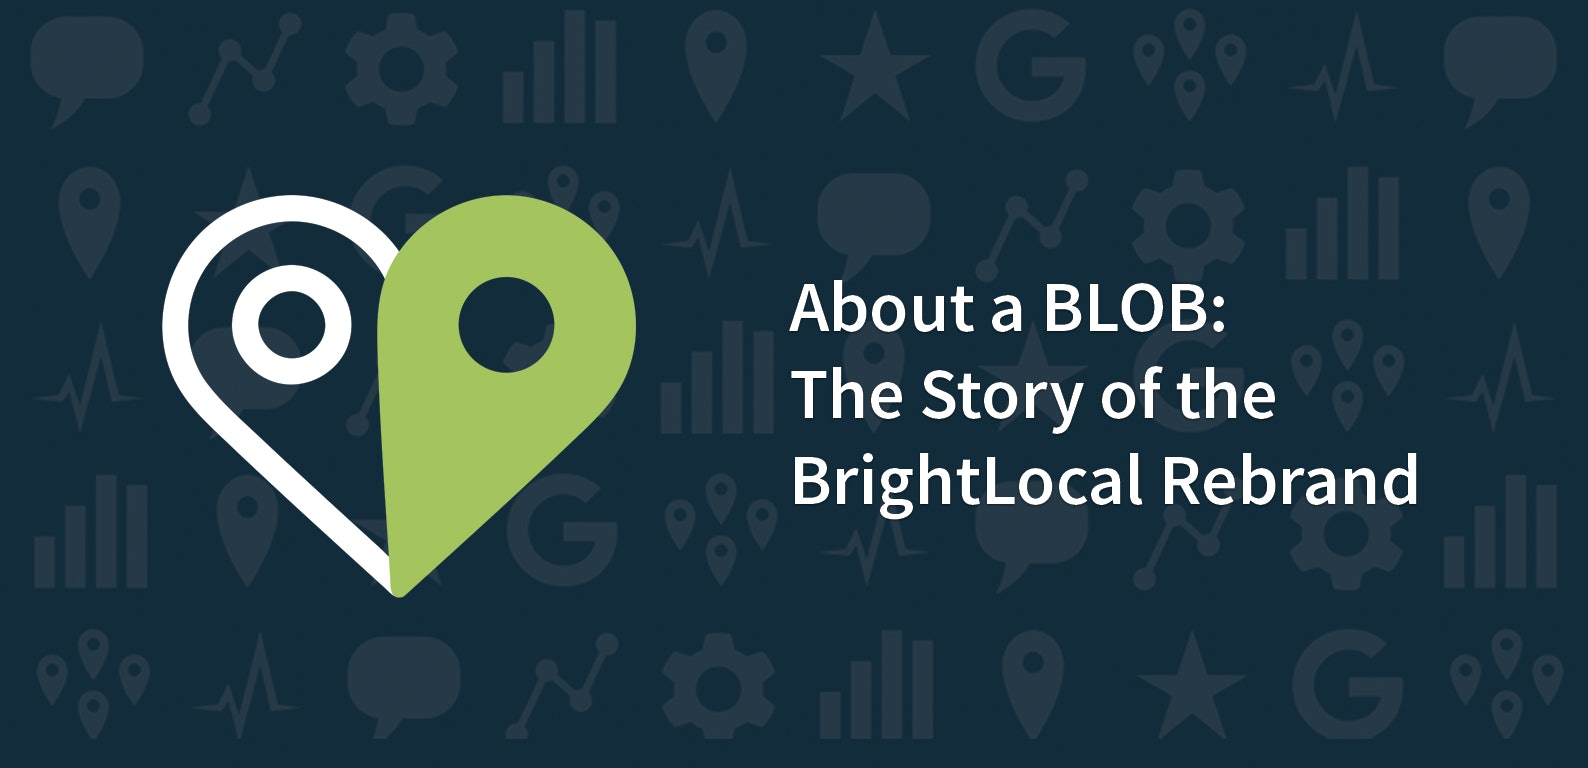 About a BLOB: The Story of the BrightLocal Rebrand